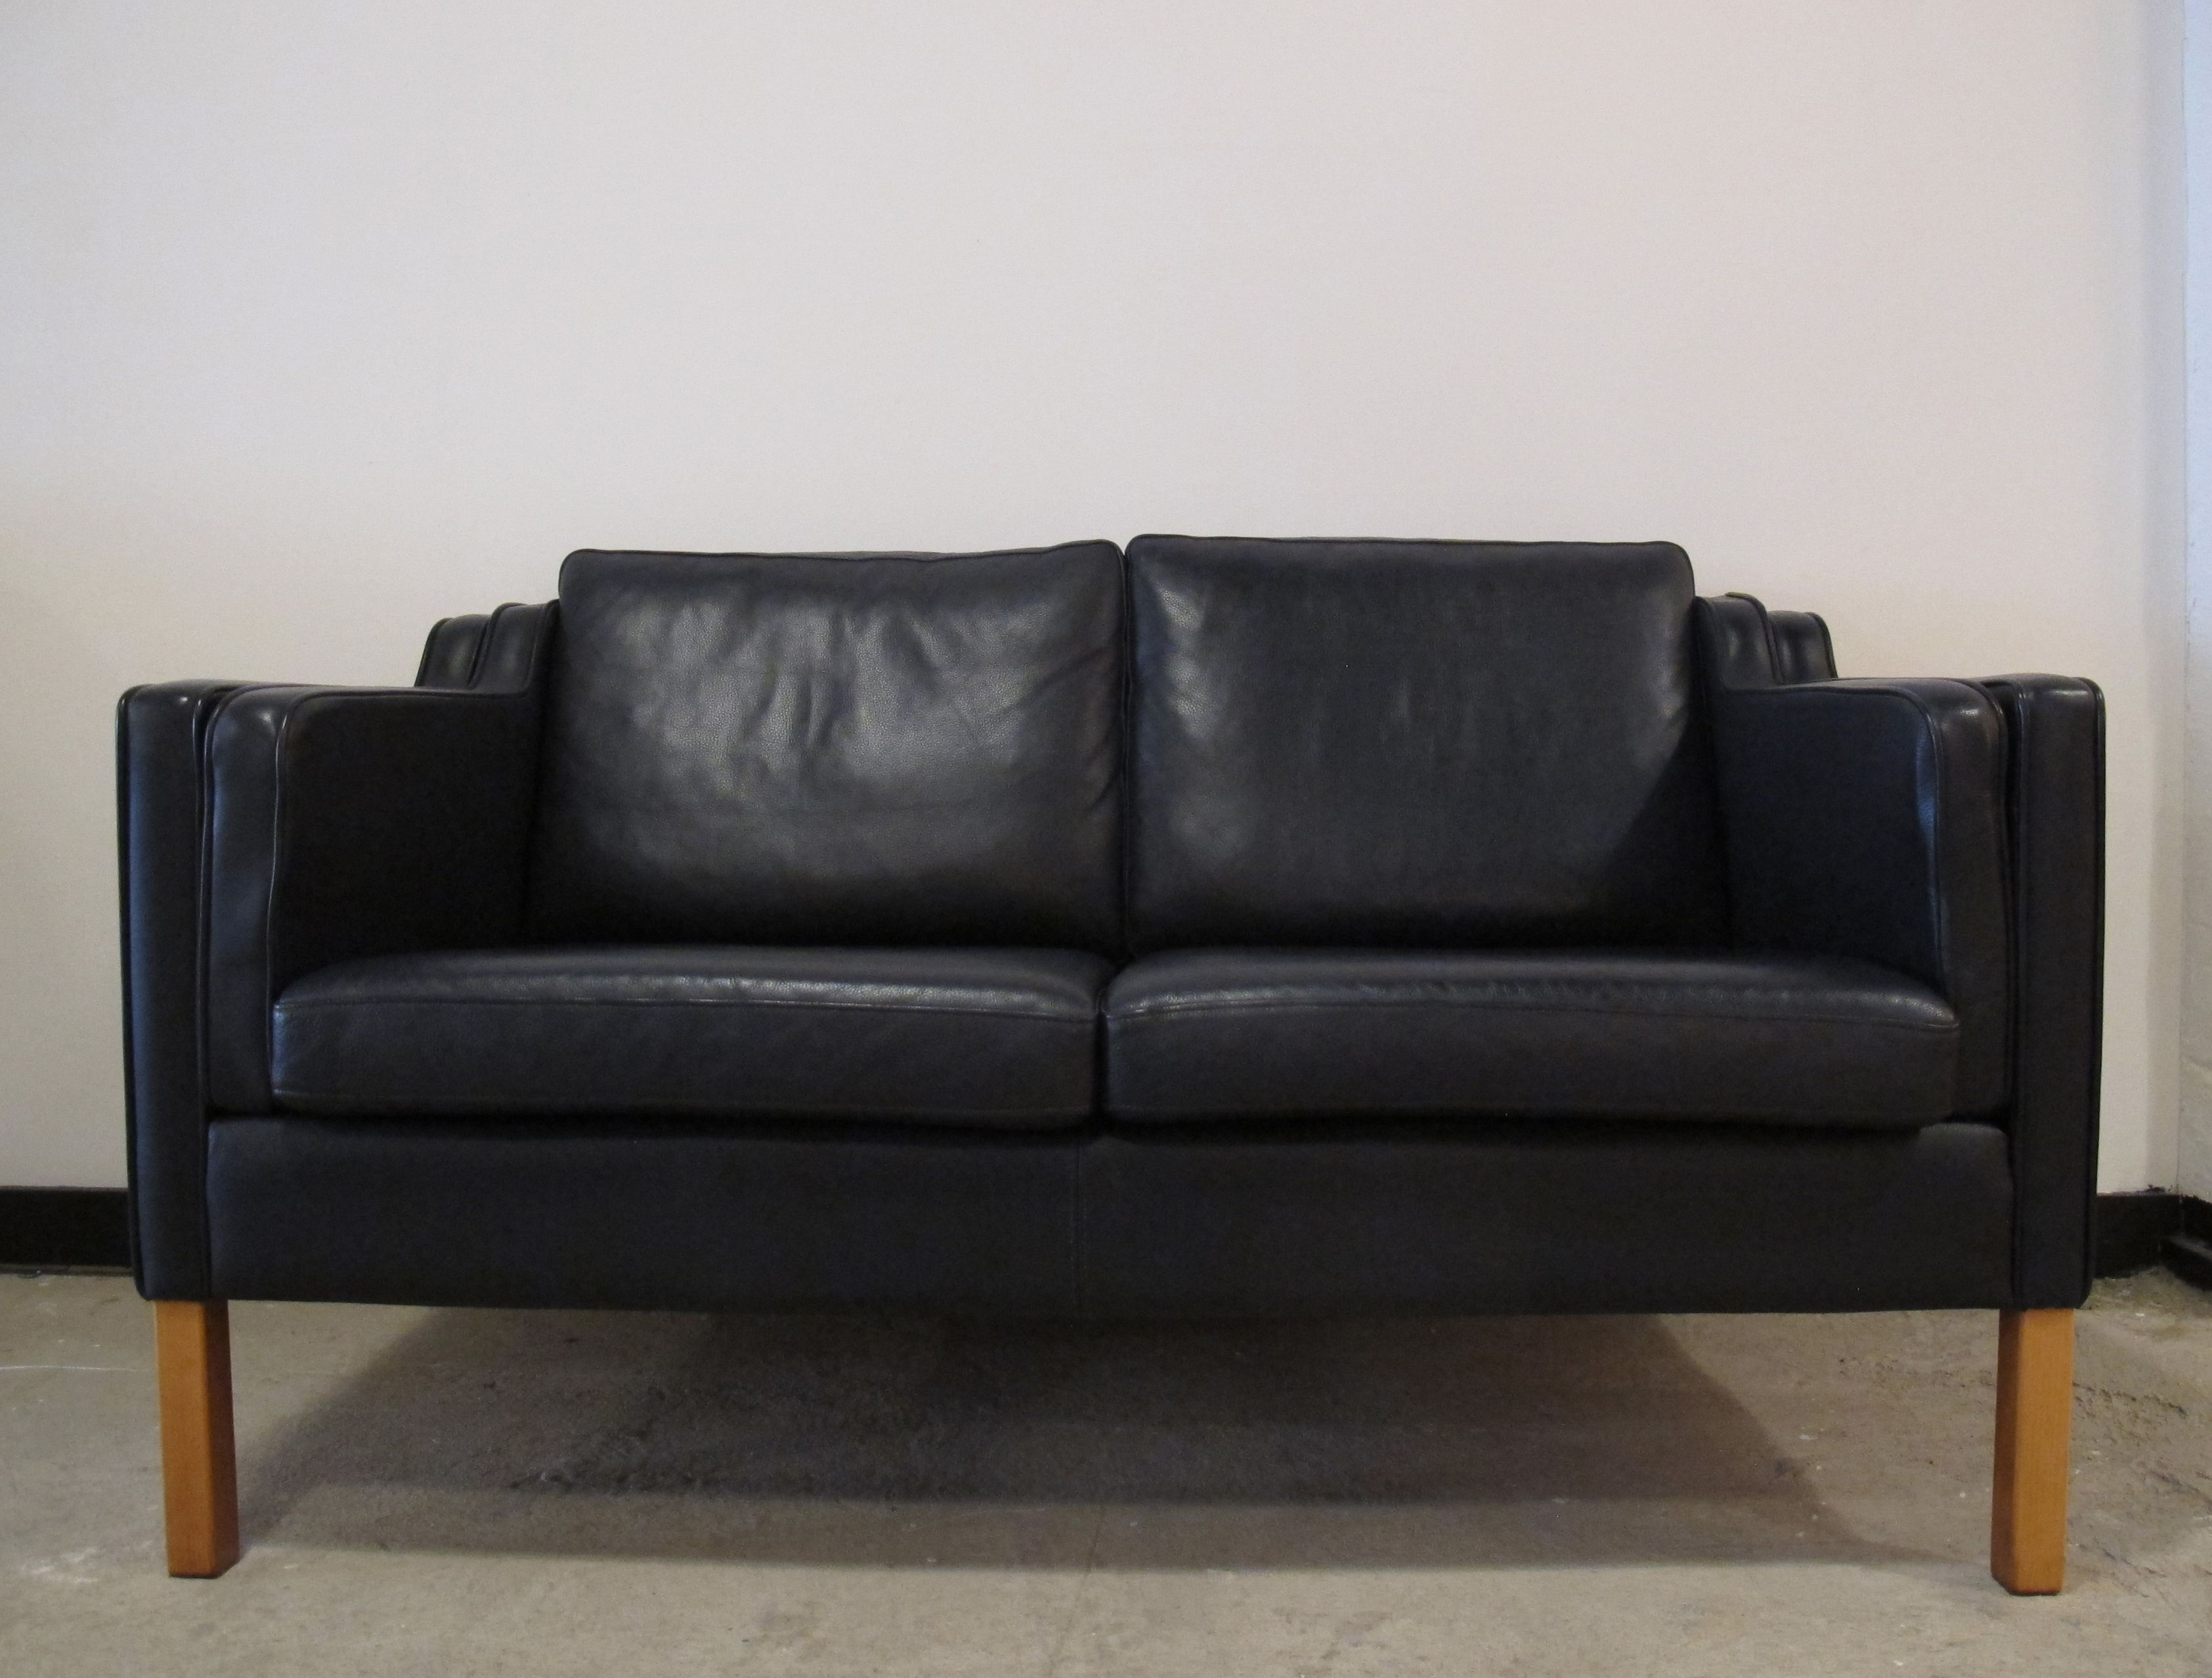 Danish Borge Mogensen Style Leather Sofa By Stouby In Stock 1200